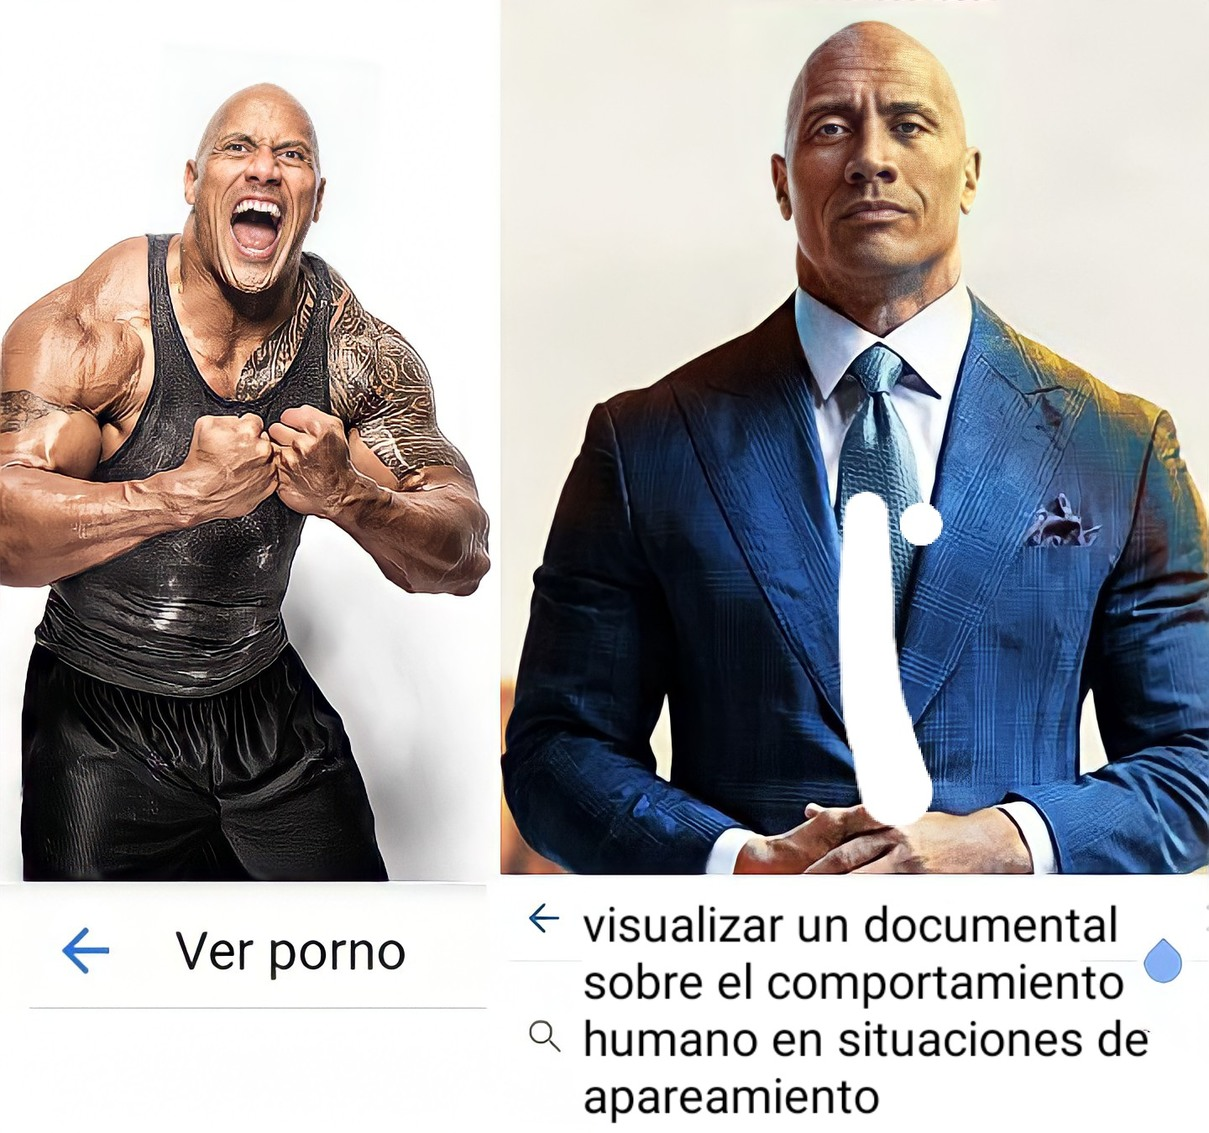 Visualizar - meme